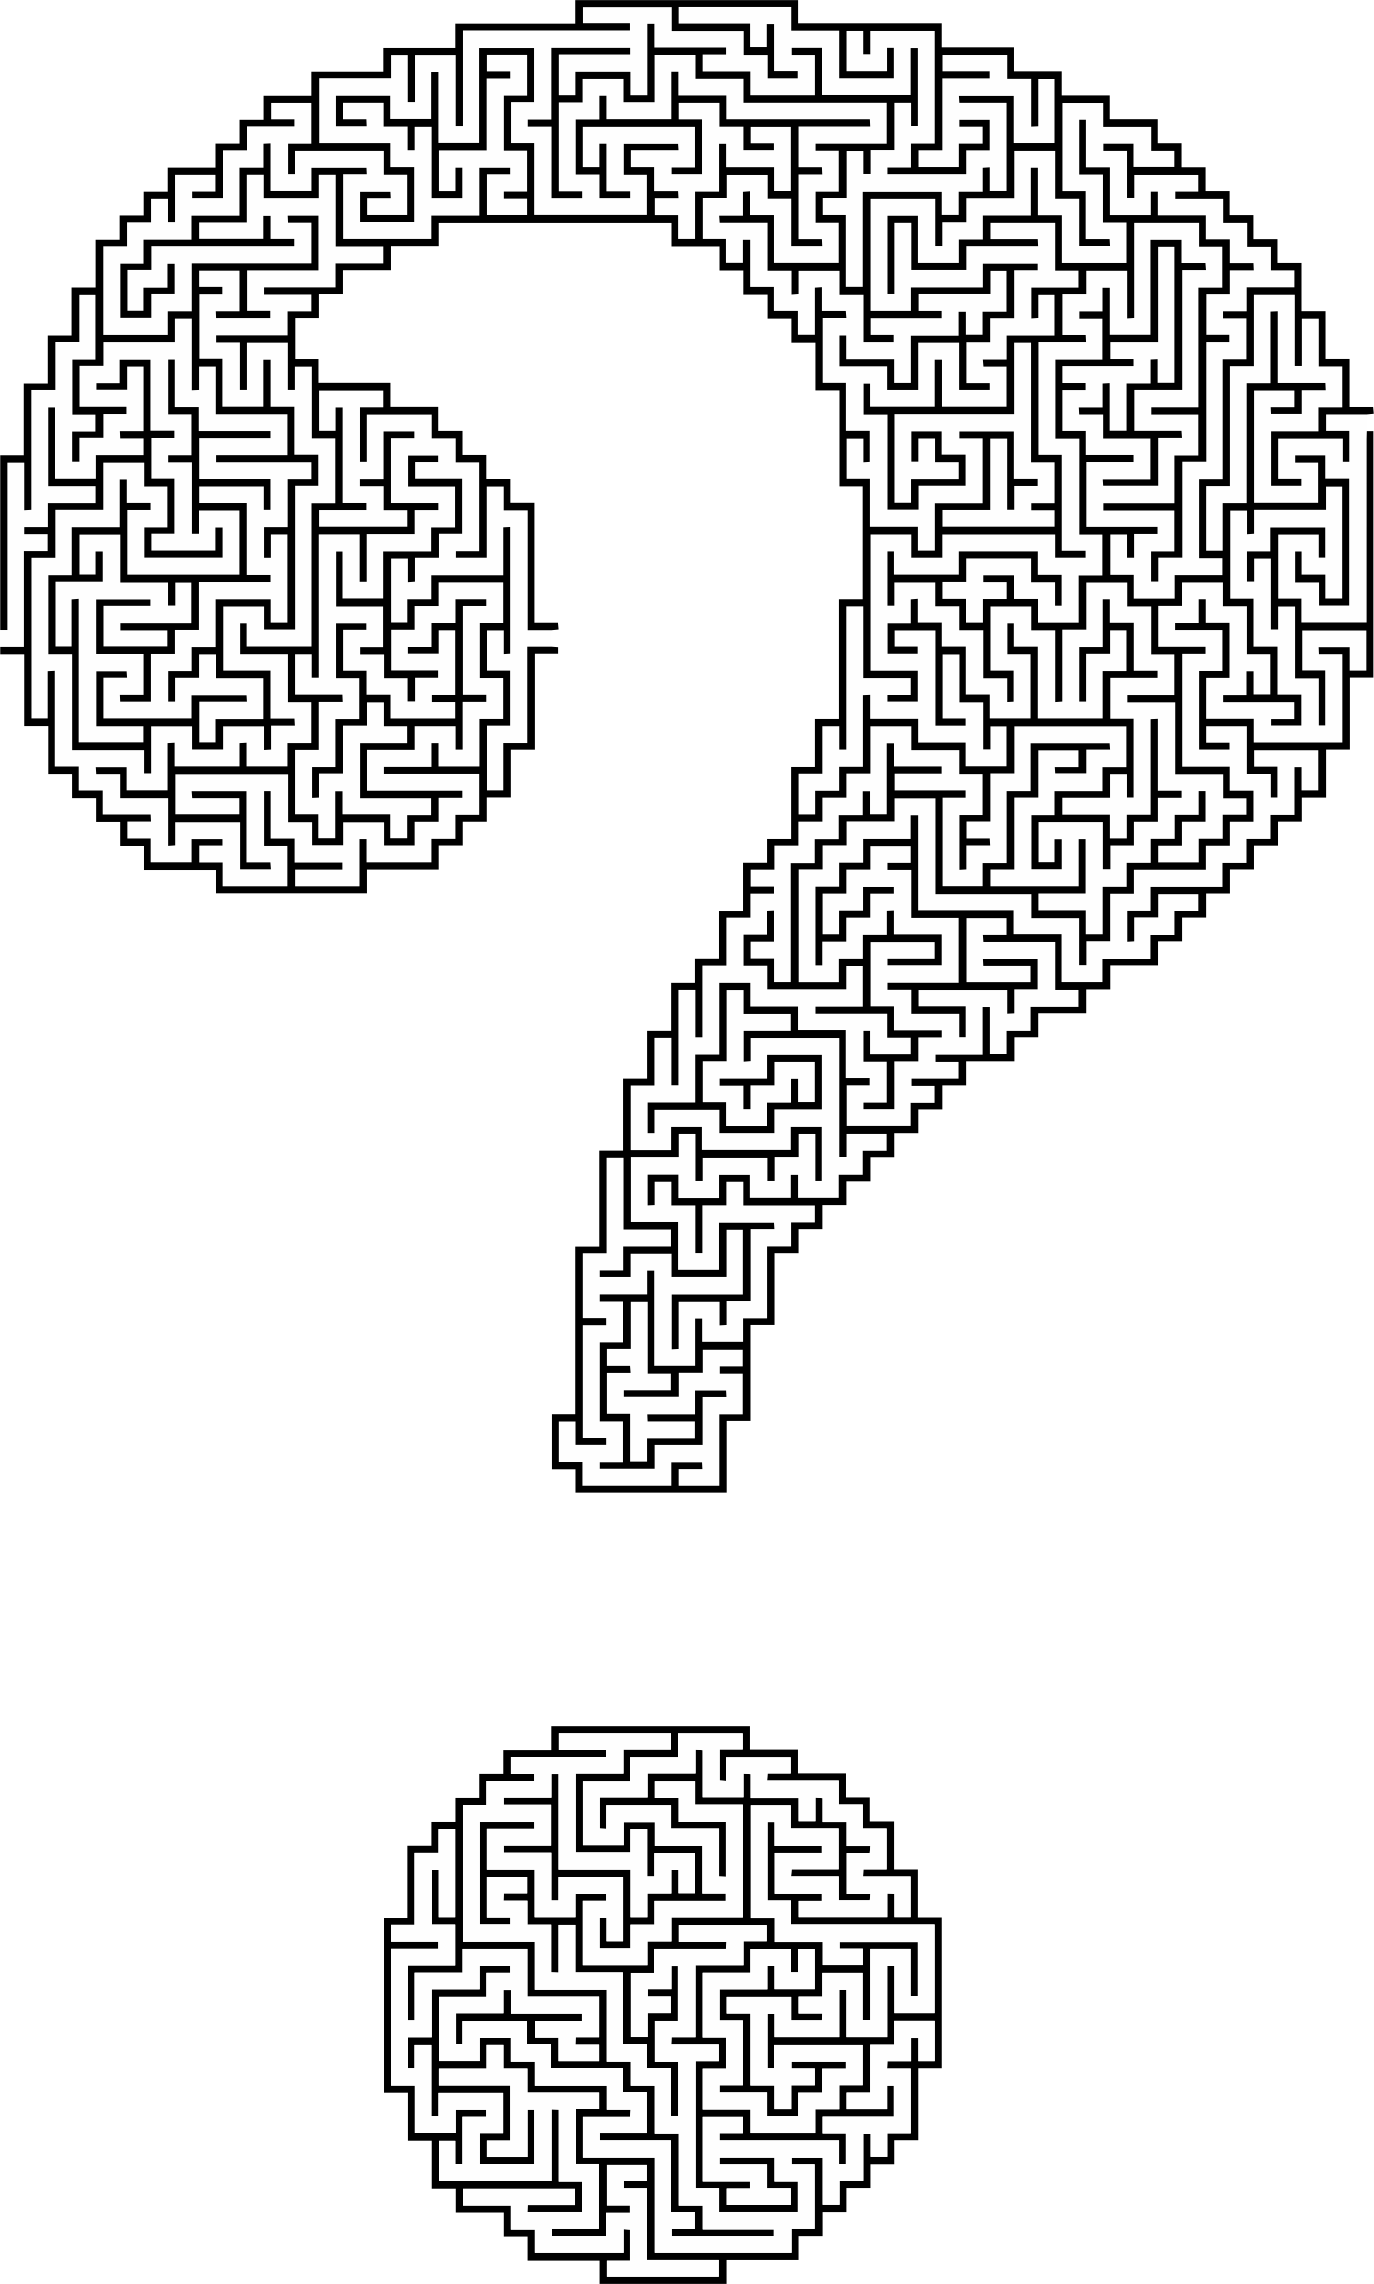 Question Mark Maze by GDJ